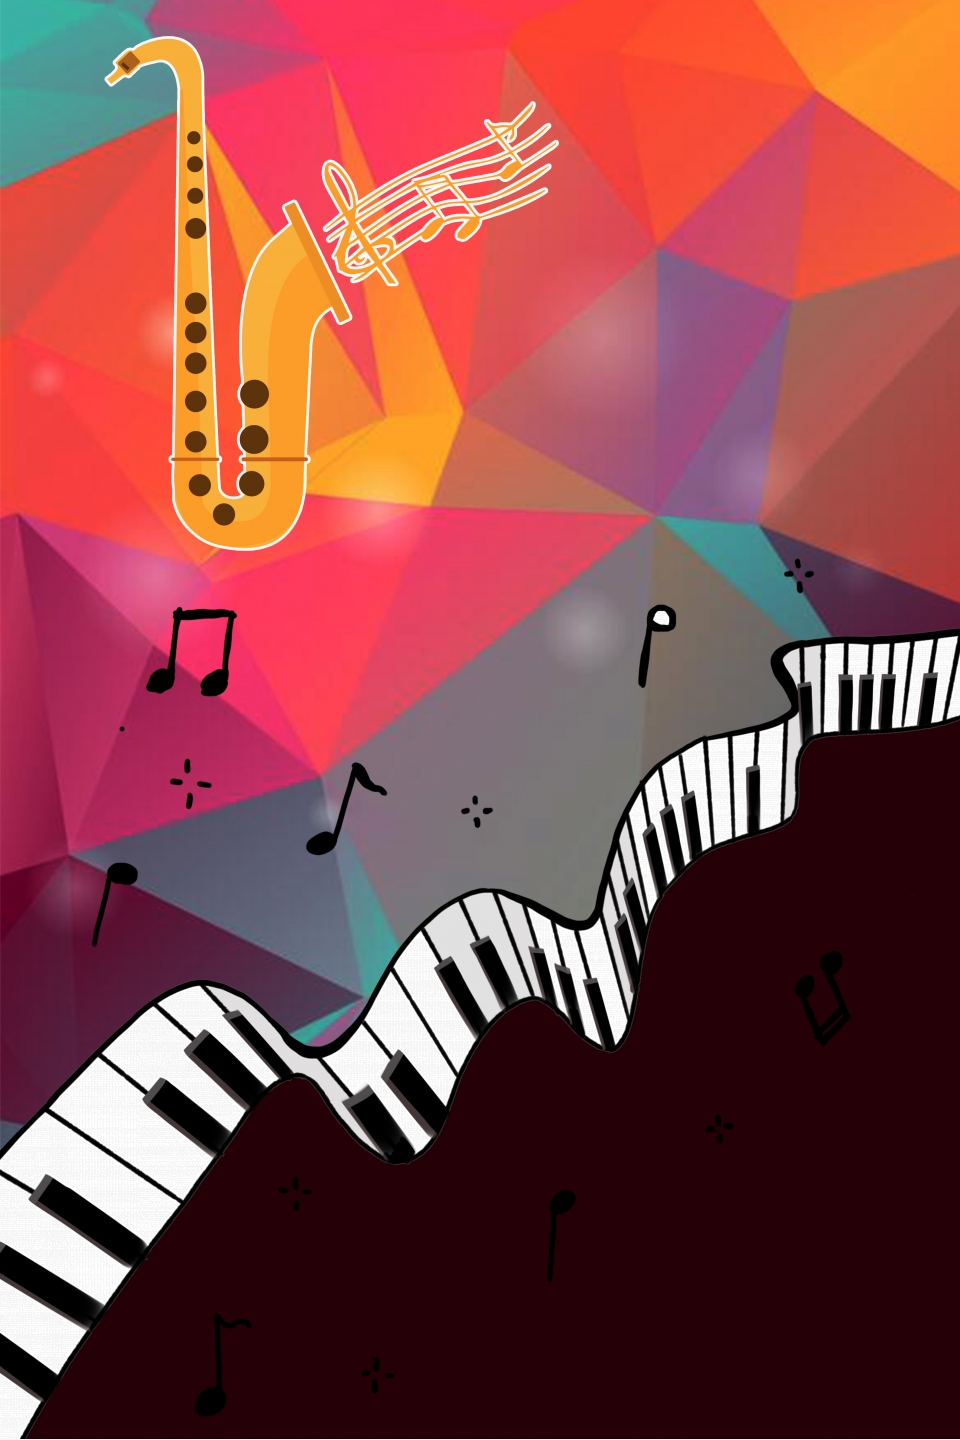 Music Theme Advertising Background Material, Music, Concert